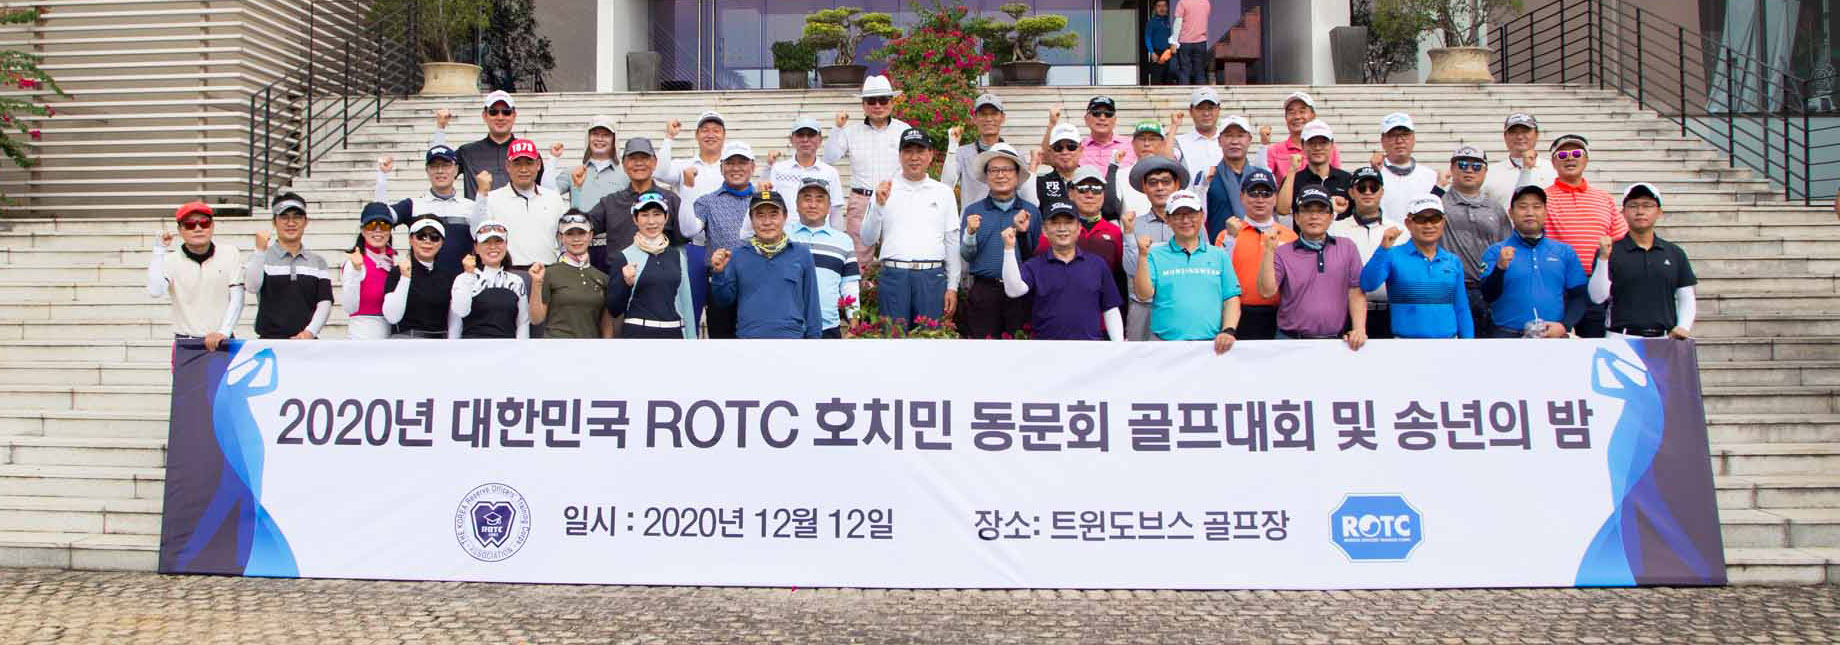 ROTC GROUP on 12th Dec 2020